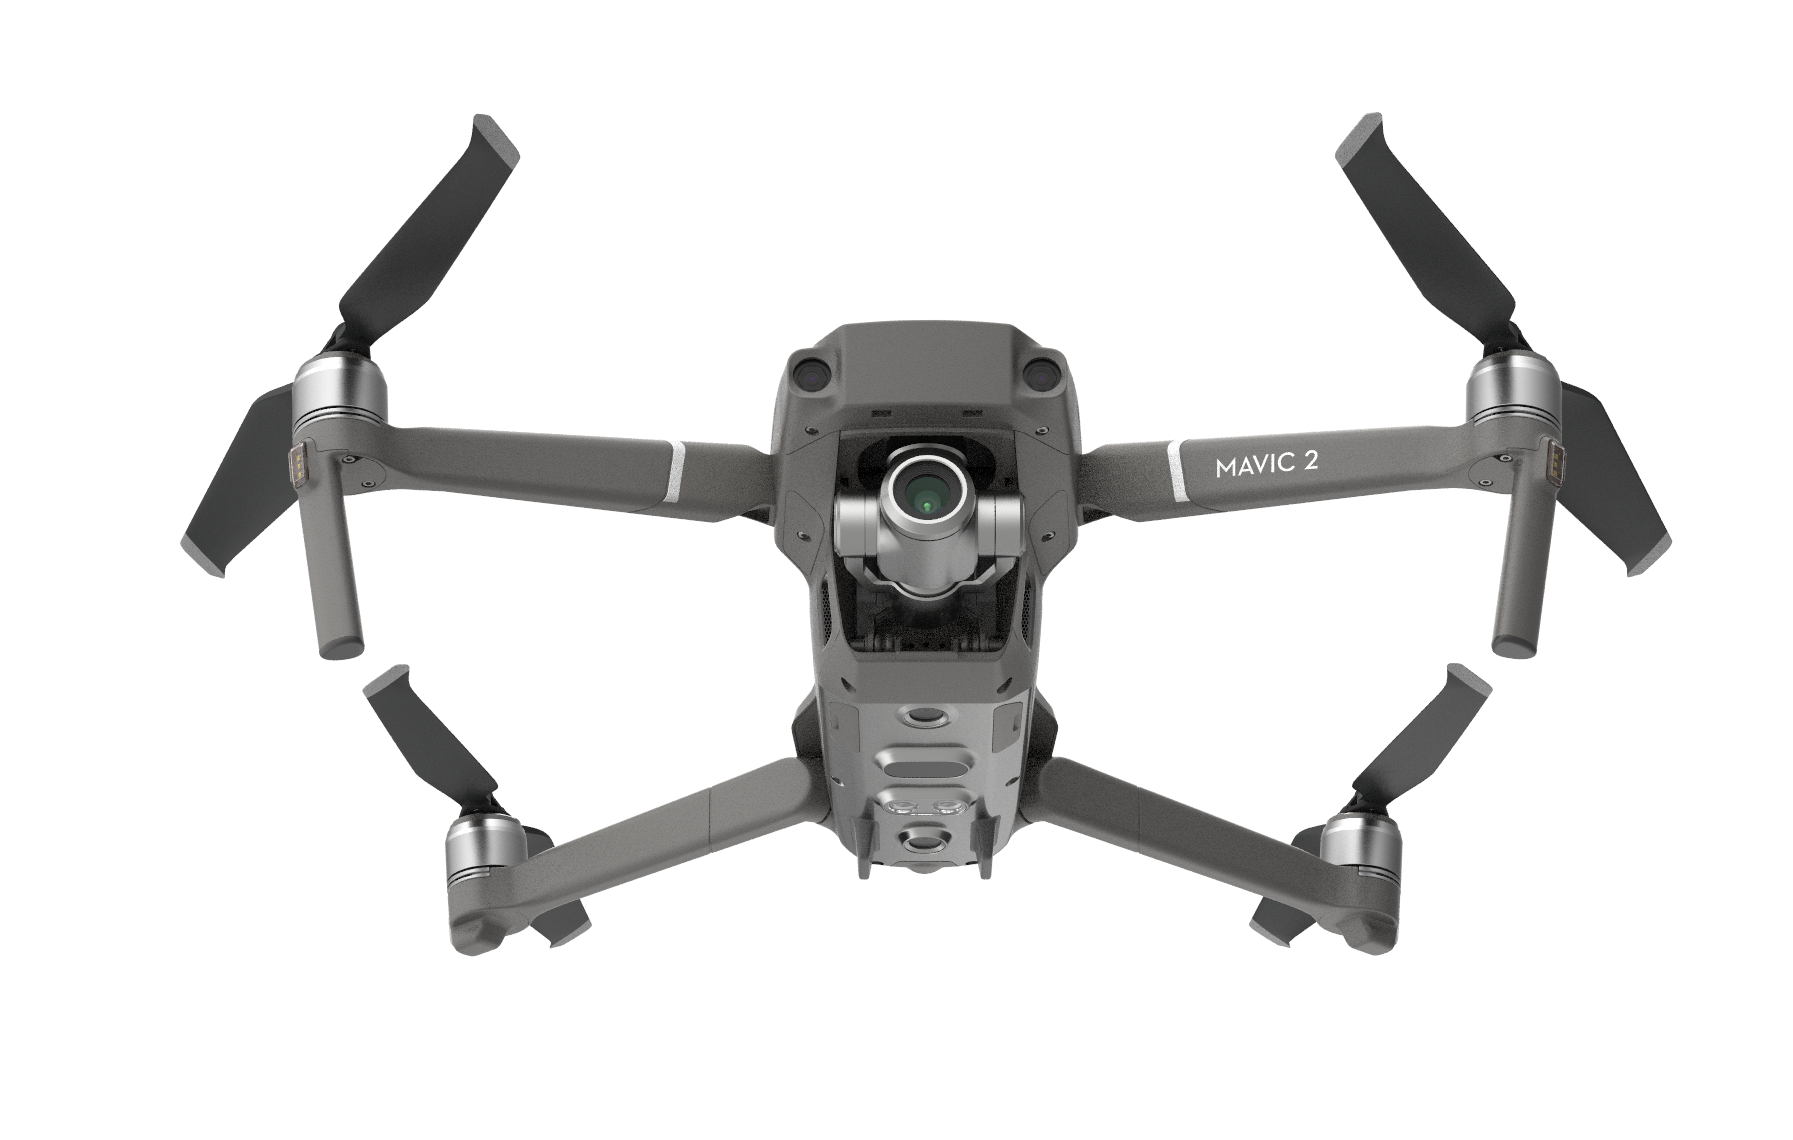 DJI's new Mavic 2 drones have upgraded cameras and zoom lenses - The